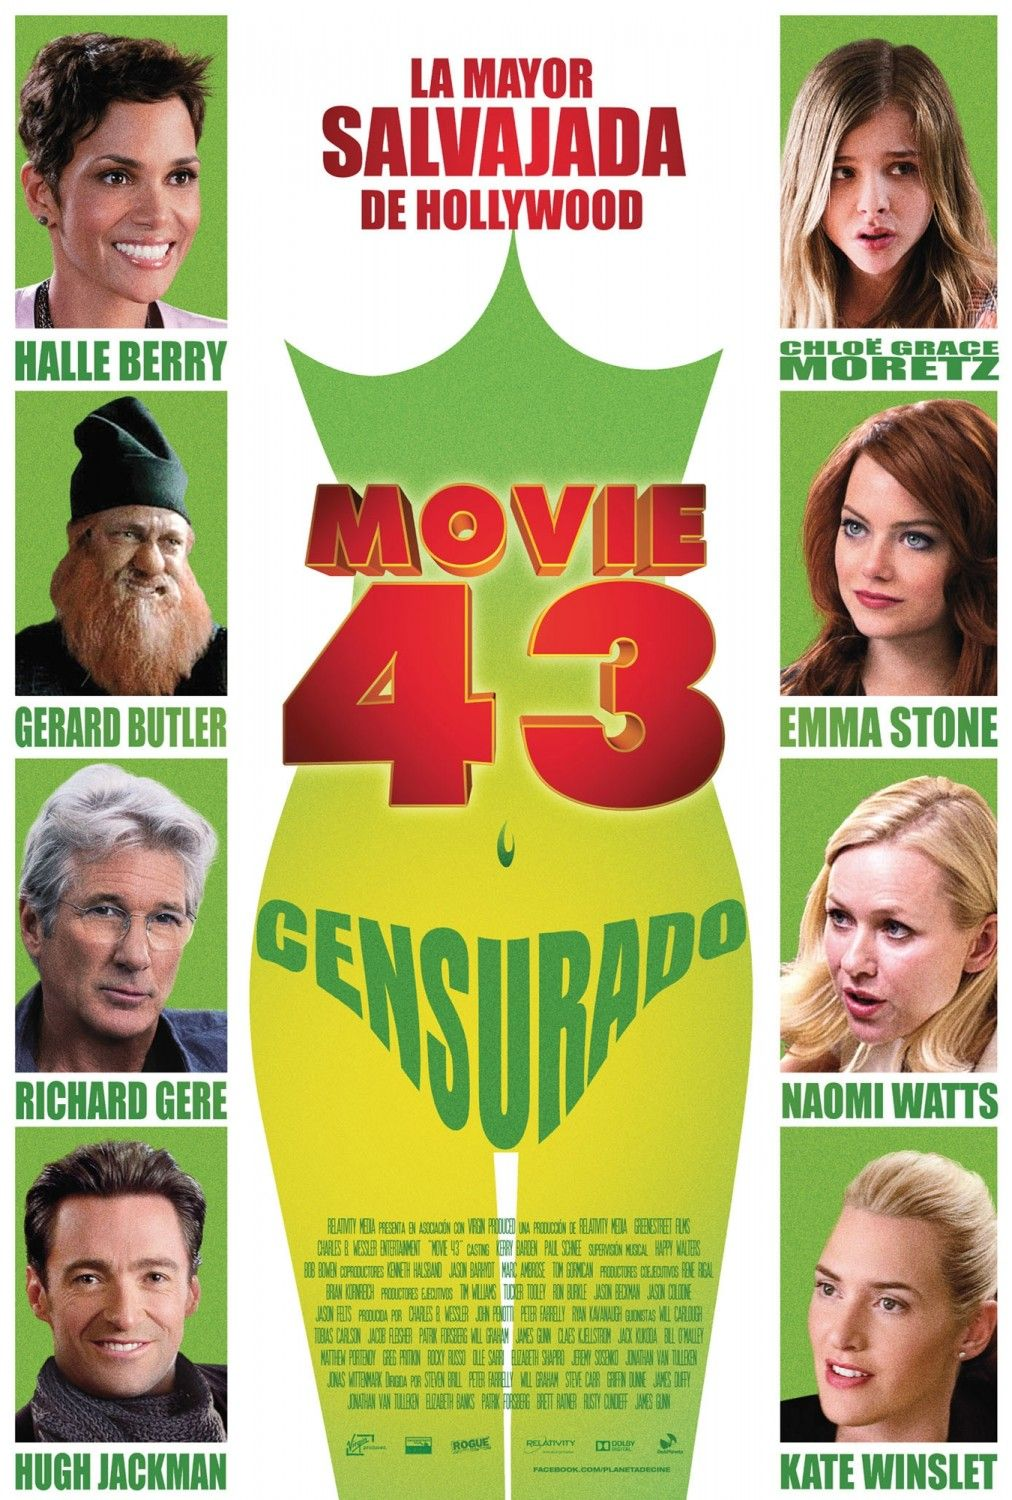 Check Out Second Poster For Movie 43 The Relativity Media Release Opens January 25th This Year With A Gargantuan Movie 43 Streaming Movies Free Richard Gere